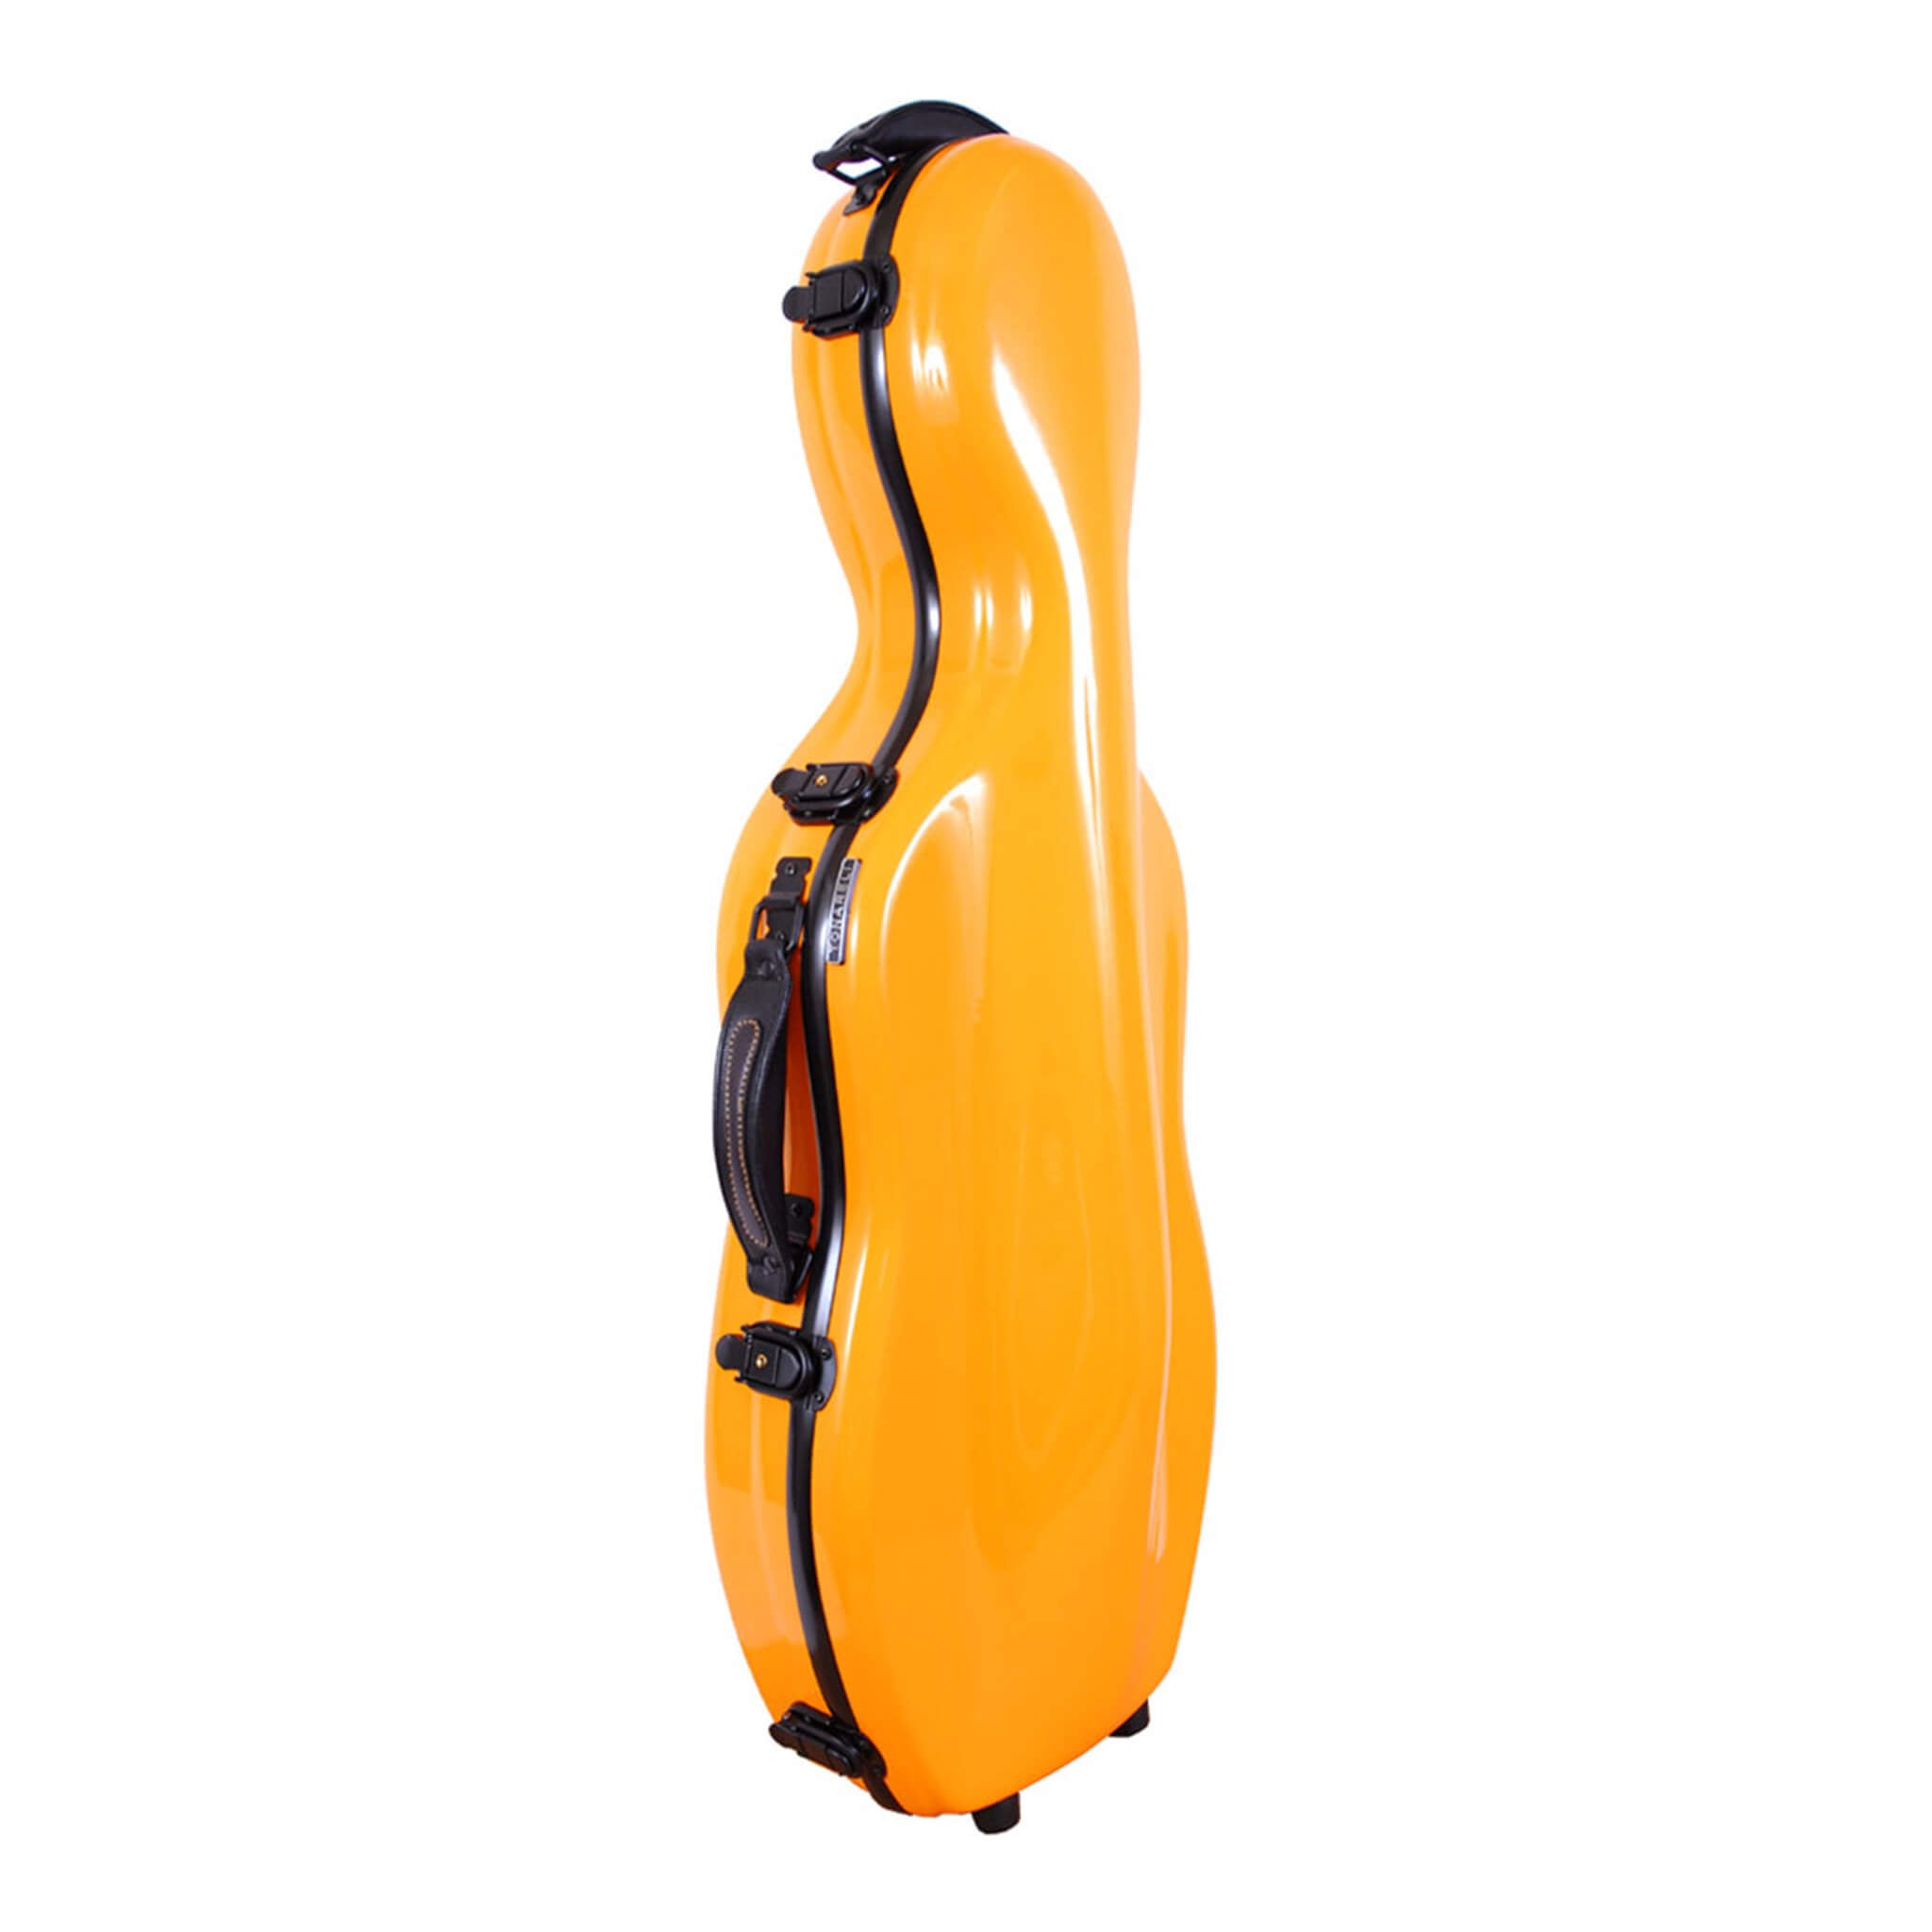 Tonareli Cello Shaped Fiberglass Viola Case